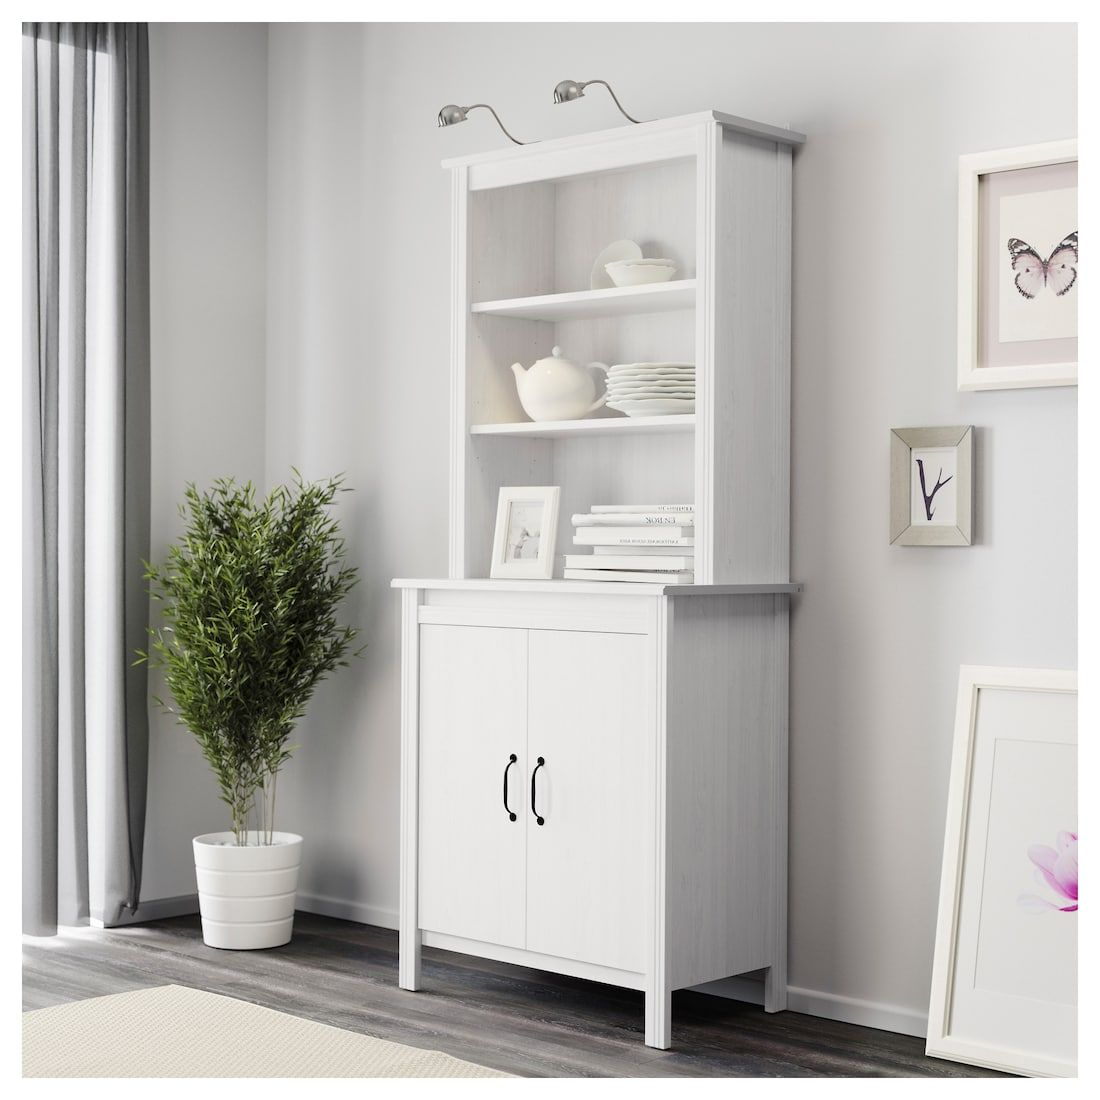 Brusali High Cabinet With Doors White 31 1 2x74 3 4 Glass Cabinet Doors Ikea Hemnes Cabinet Brusali